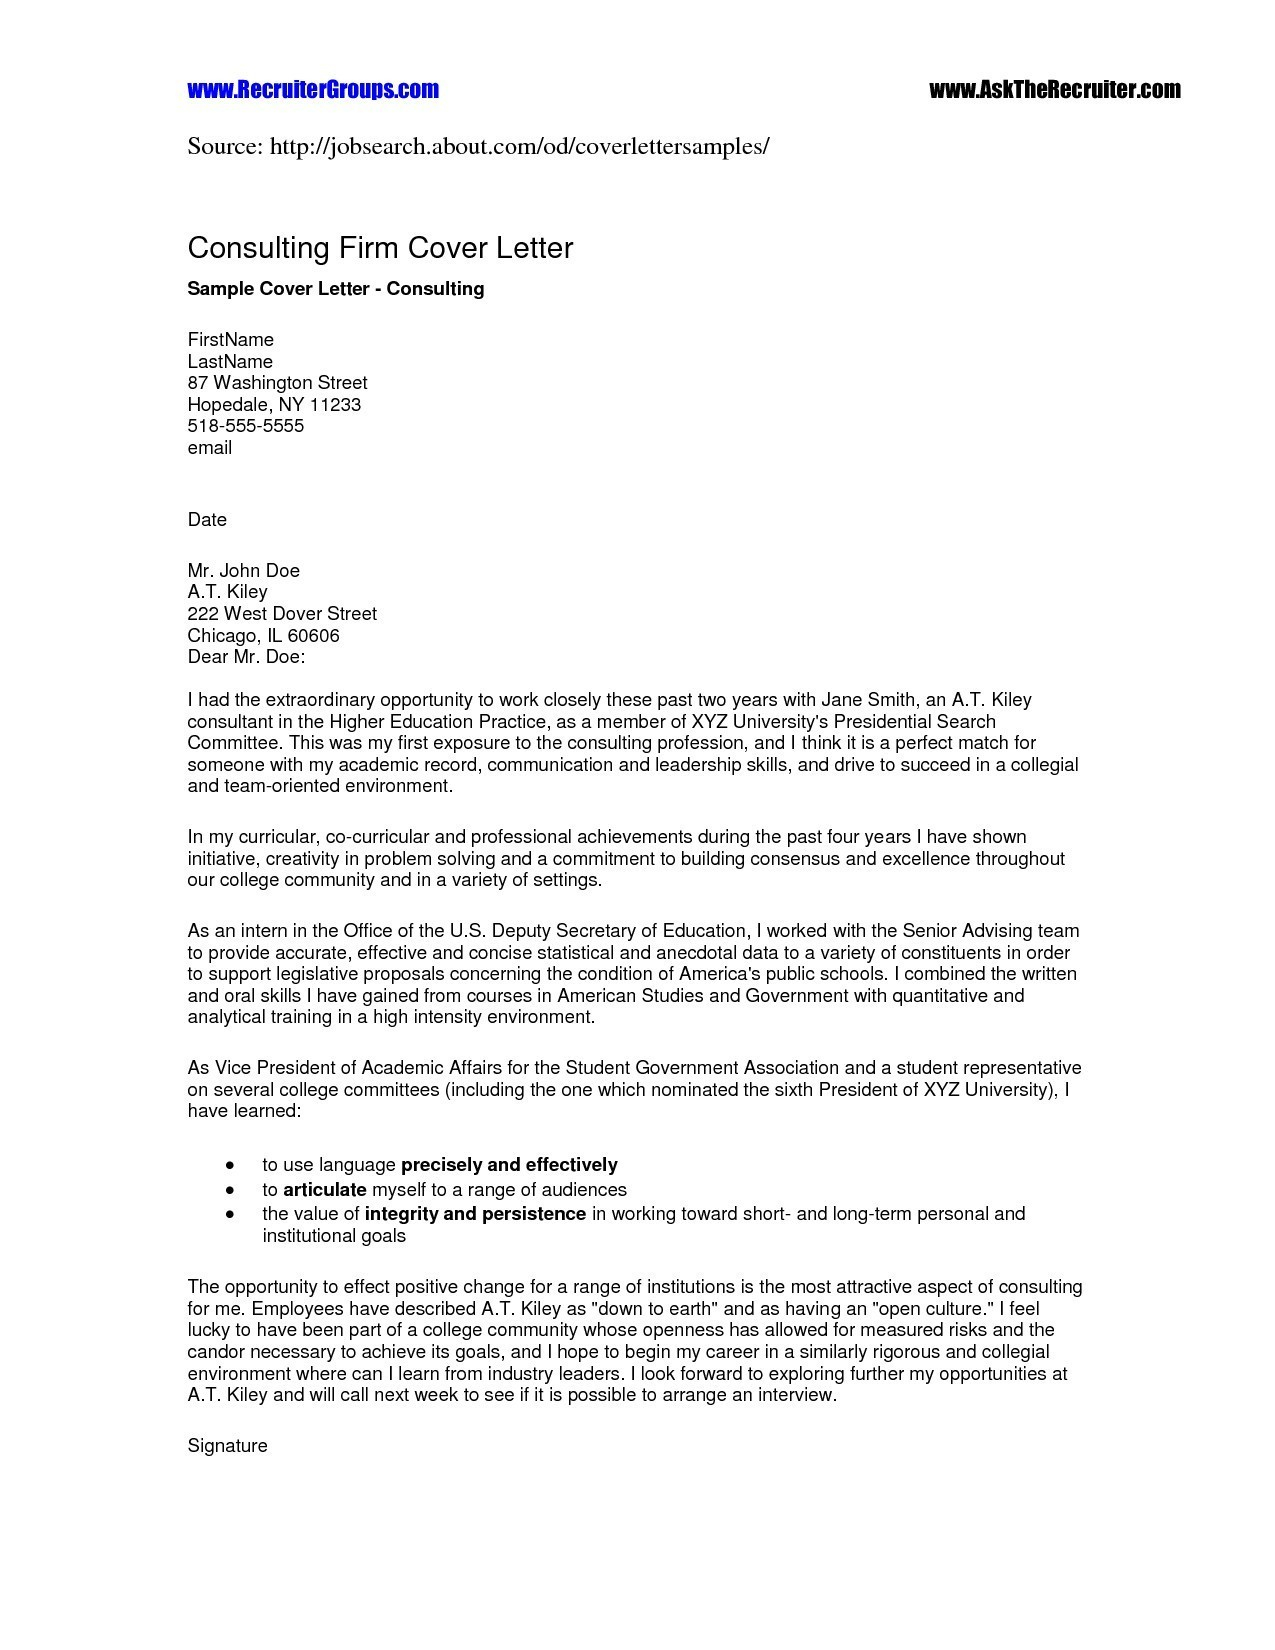 Formal Business Letter Template - Business Cover Letter format Sample Fresh format Business Cover